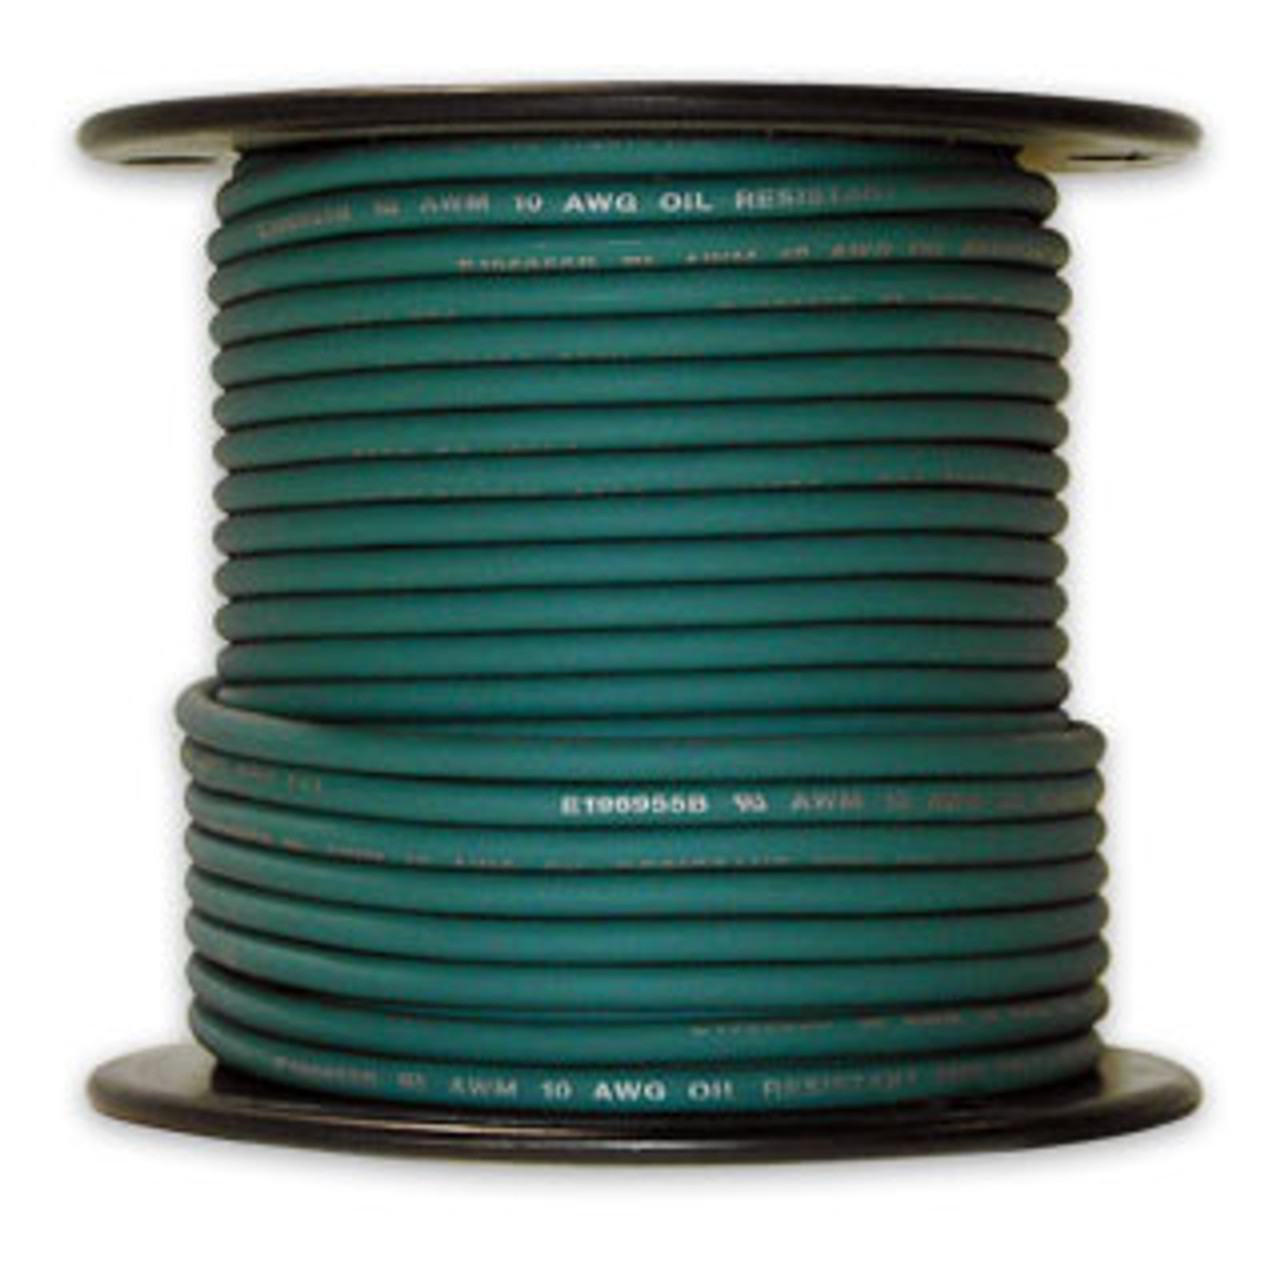 Arctic Ultraflex Cold Weather Flexible Wire 100 Foot Spool 12 AWG Green Single Conductor Wire tinned fine strand 100% copper